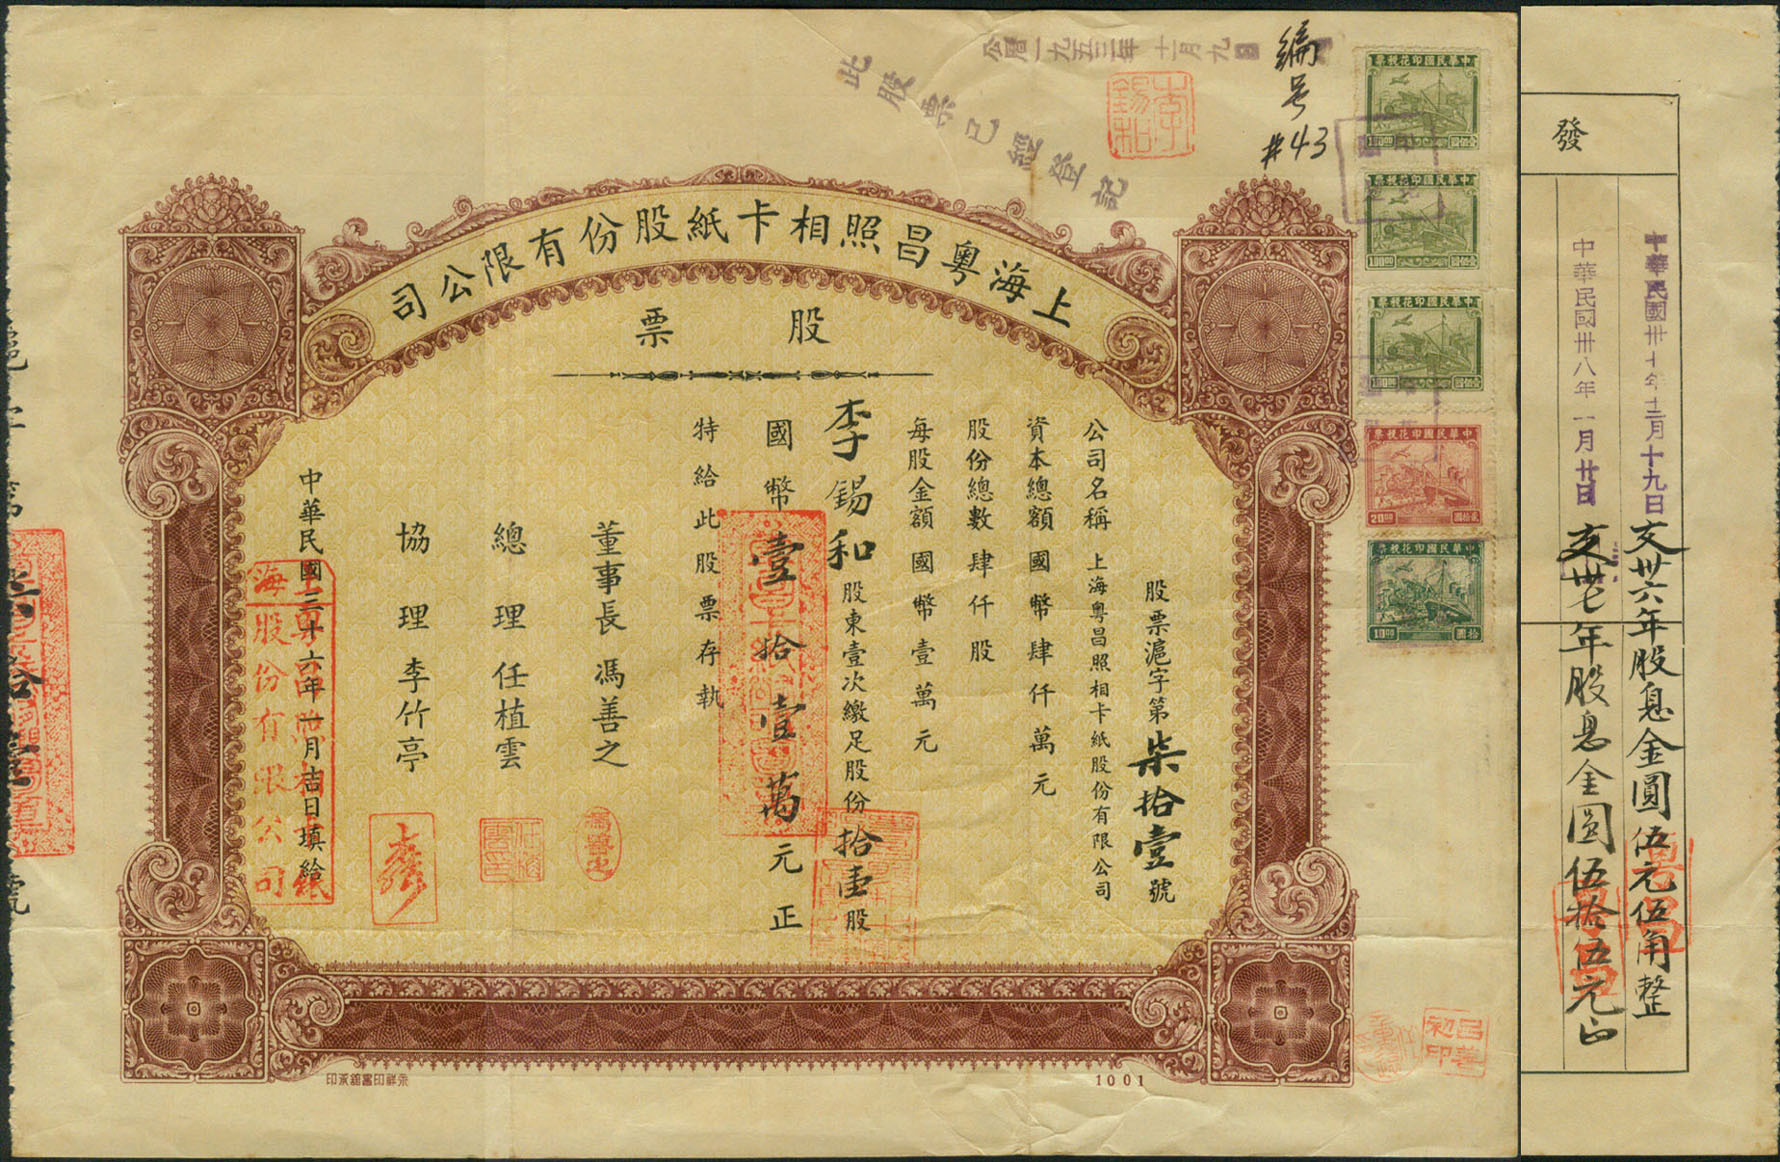 S1158 Shanghai Yue-Chang Photo-Card Co. Ltd, Share Certificate of 1947